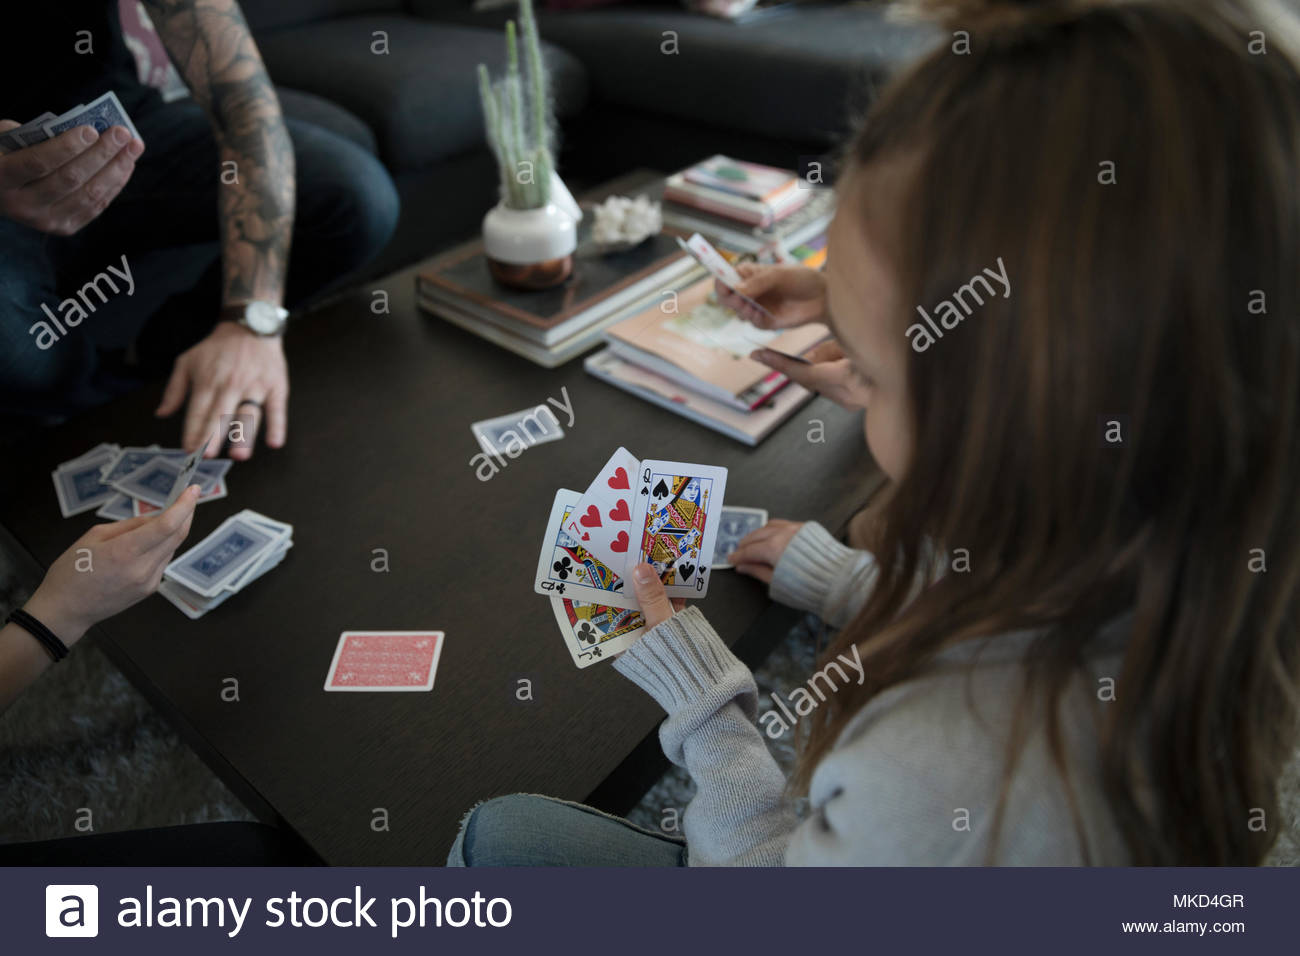 Girl playing card game with family - Stock Image